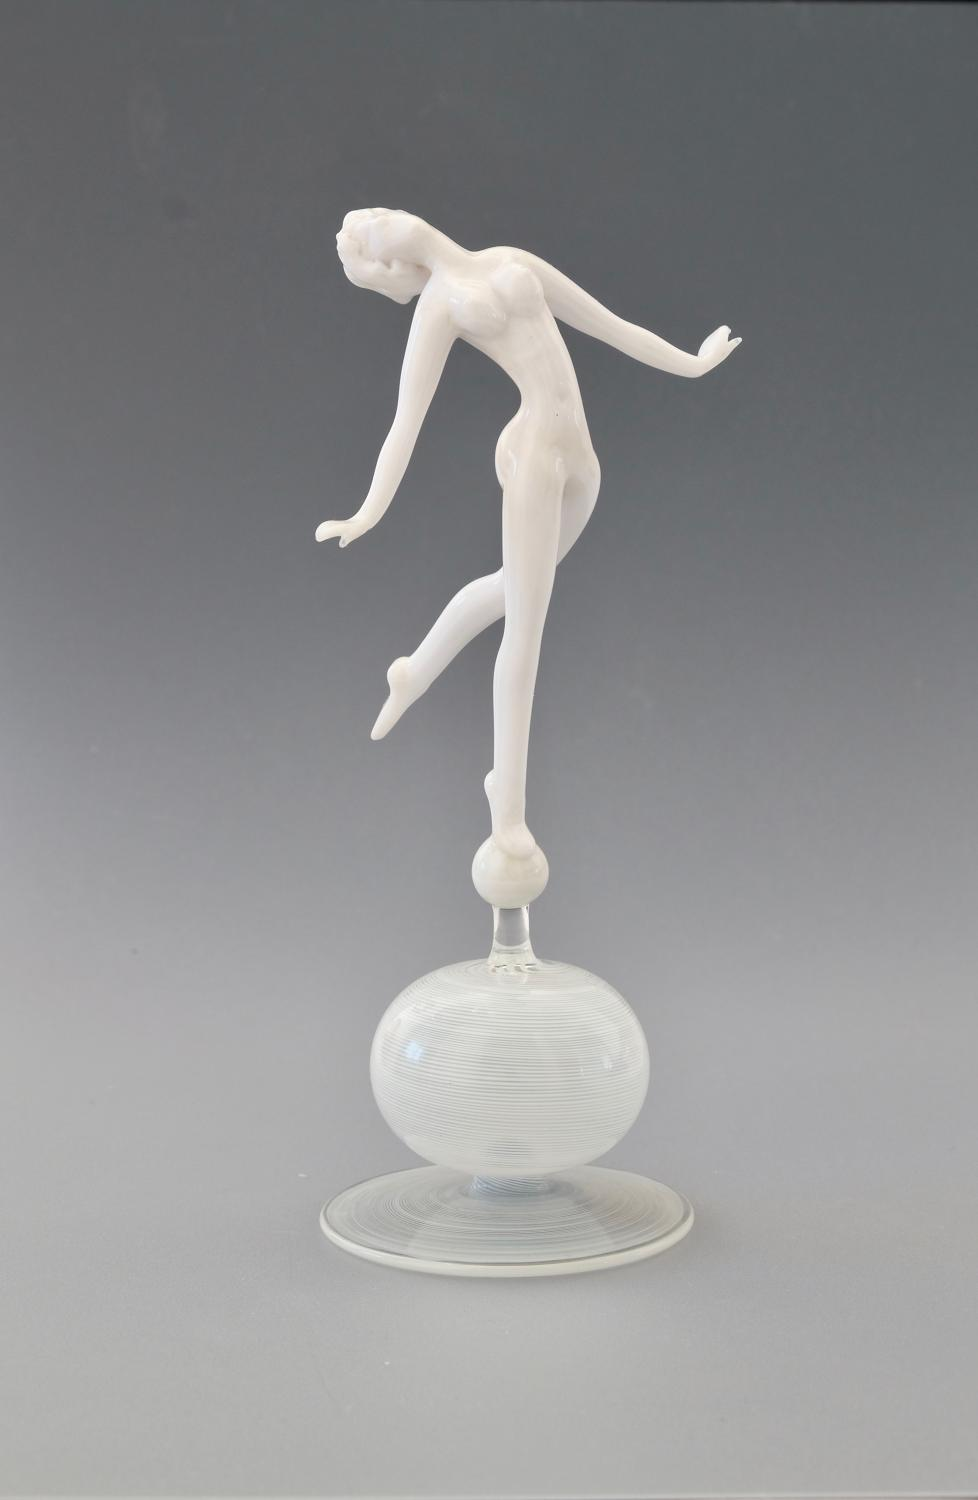 Glass Figure by Istvan Komaromy.